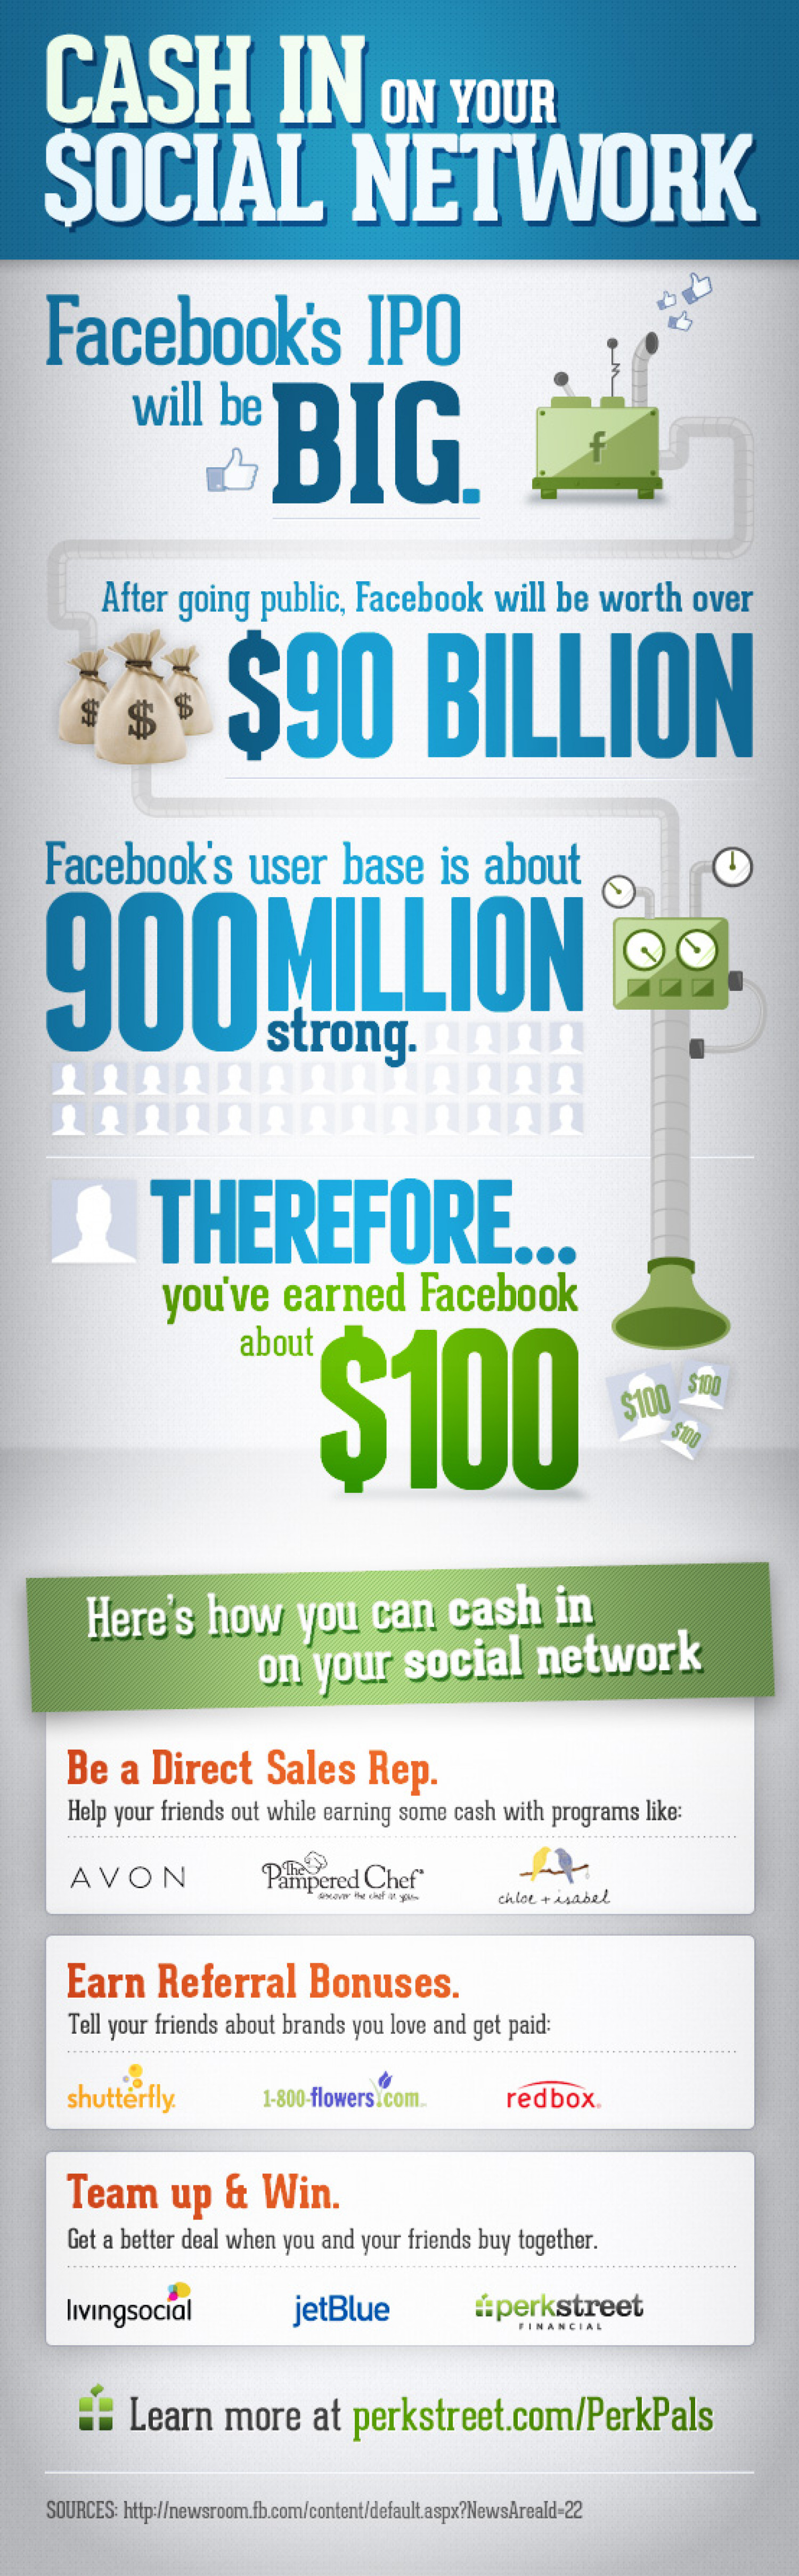 Cash In On Your Social Network  Infographic